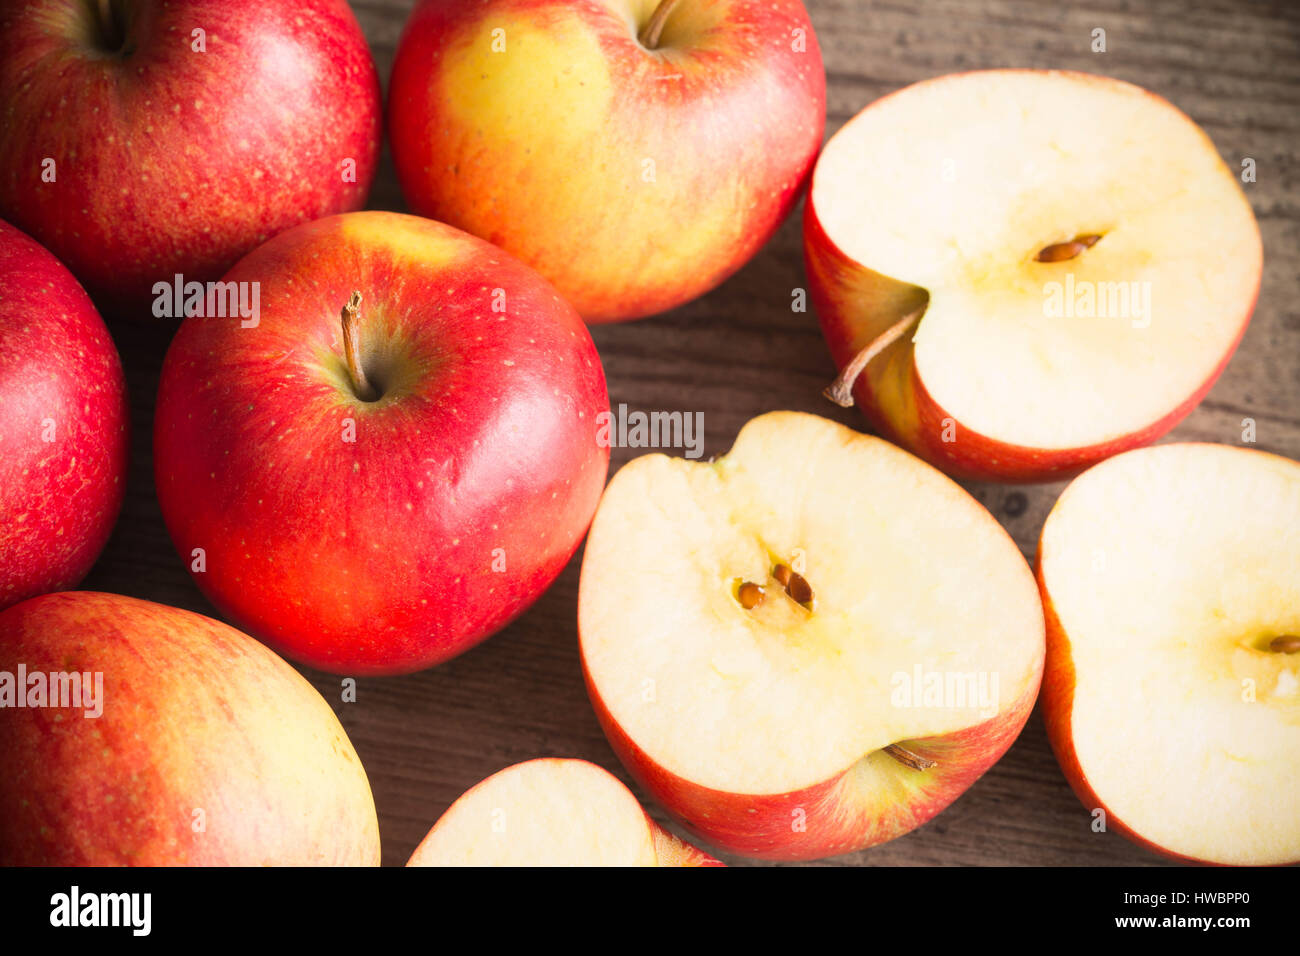 Juicy apple whole and cut apples on a table - Stock Image